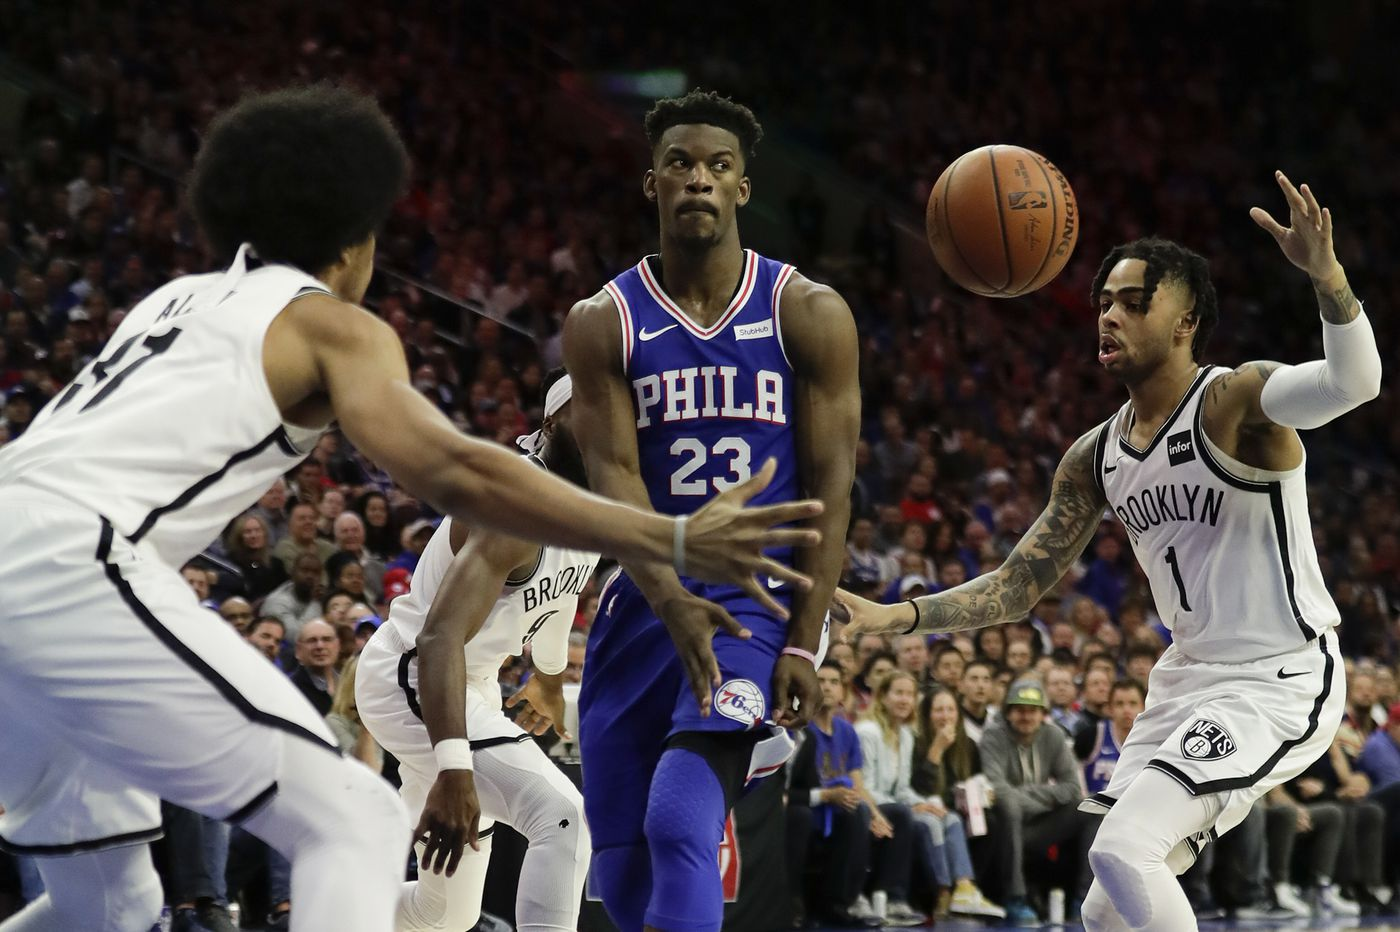 Jimmy Butler has become Sixers' leader in NBA playoffs series against Nets